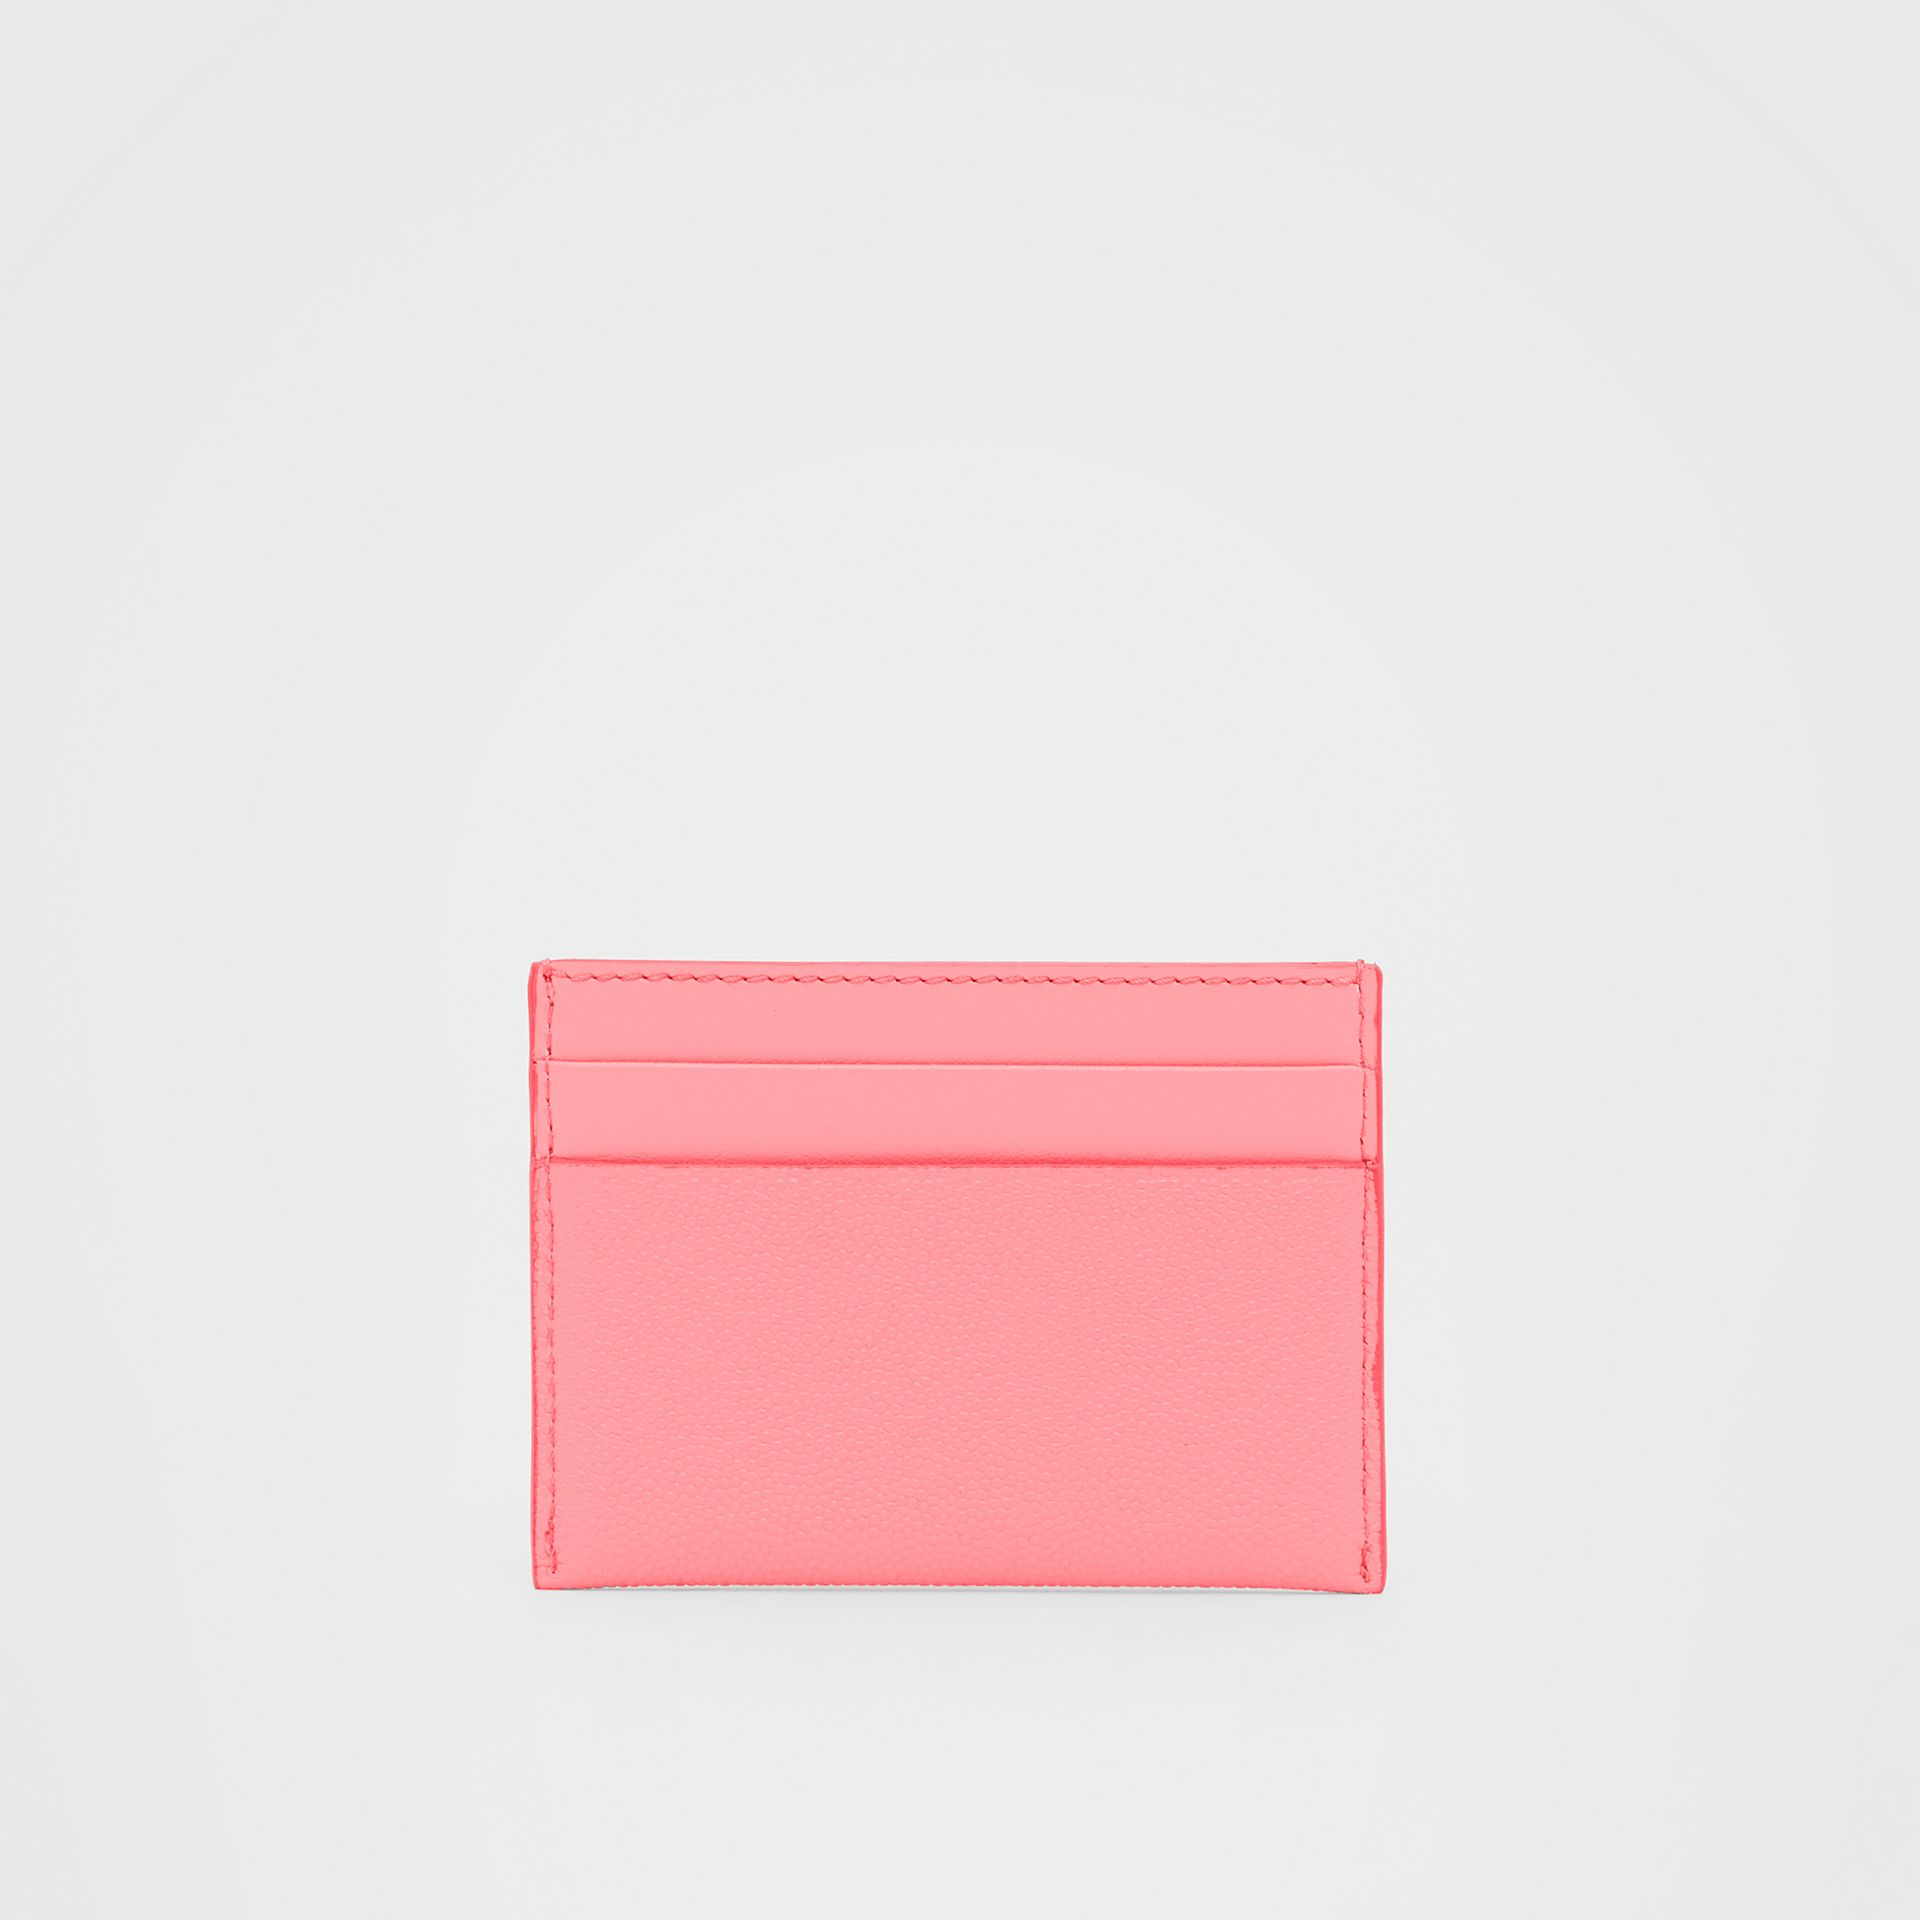 Monogram Motif Leather Card Case in Candy Floss/palladio - Women | Burberry Hong Kong S.A.R - gallery image 4